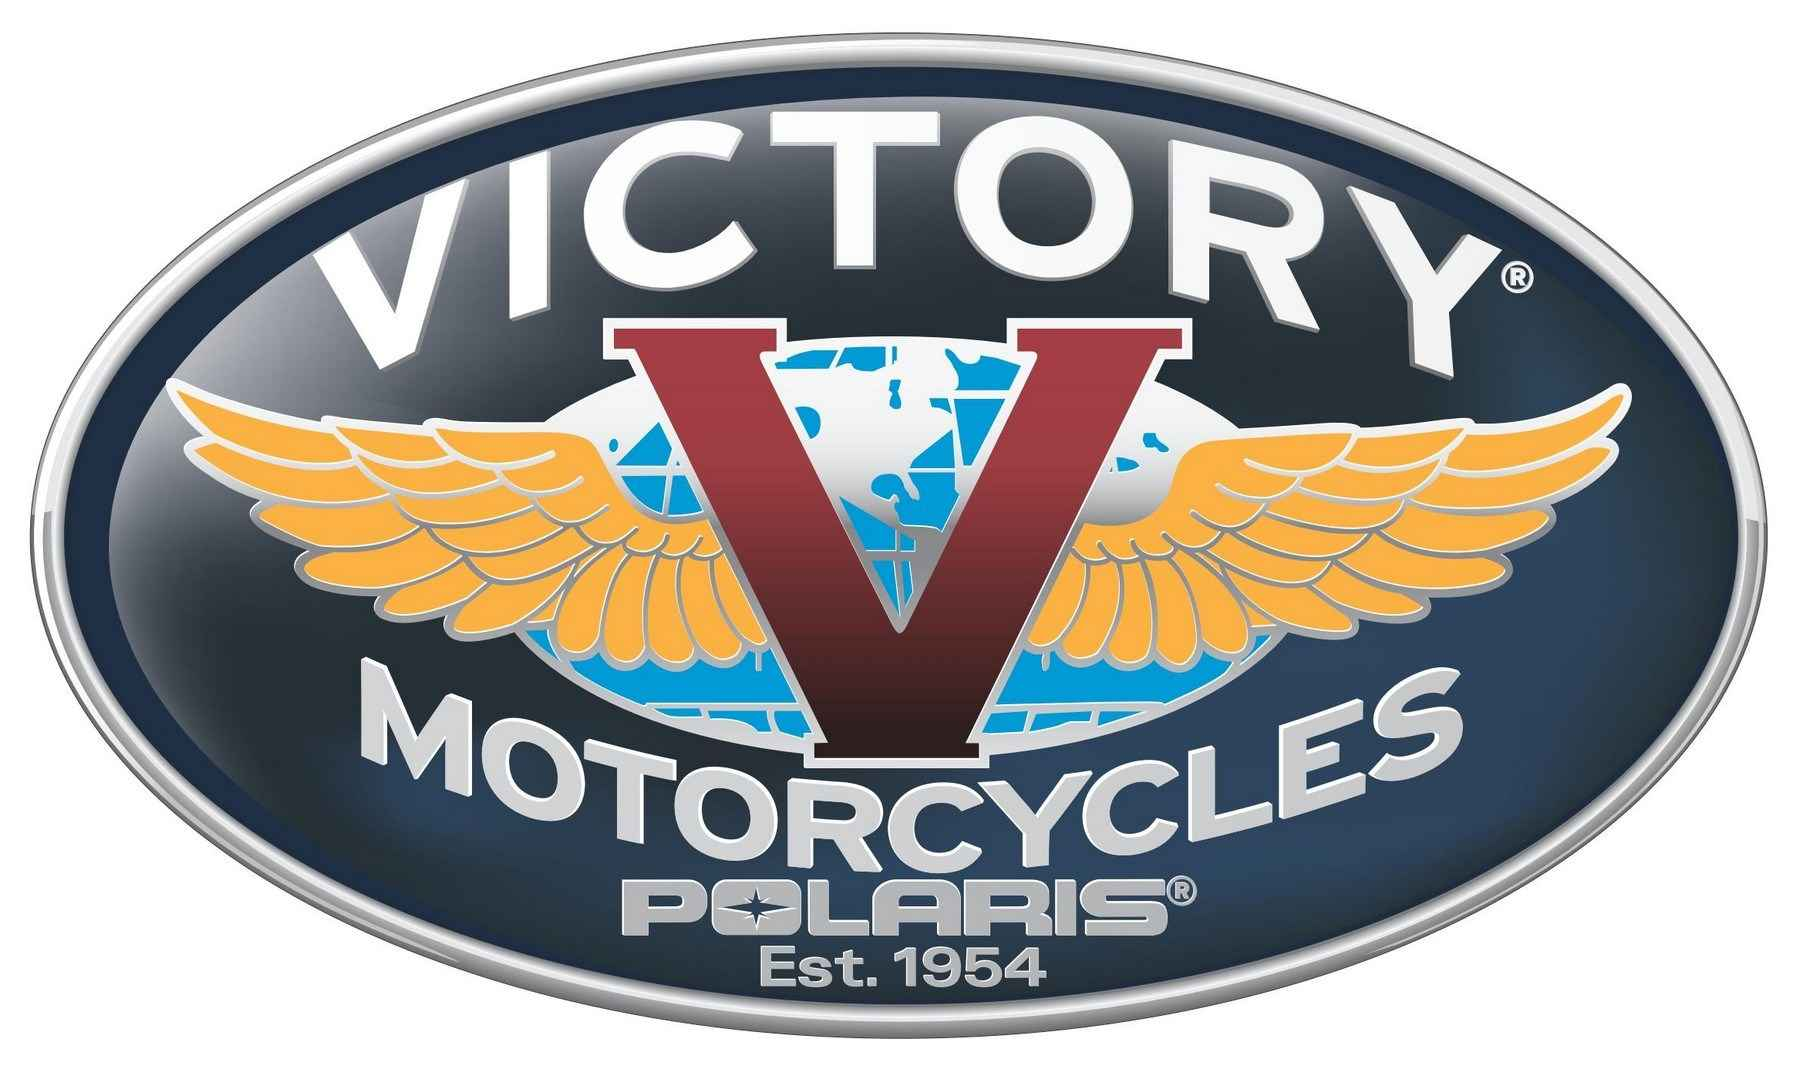 victory motorcycle logo